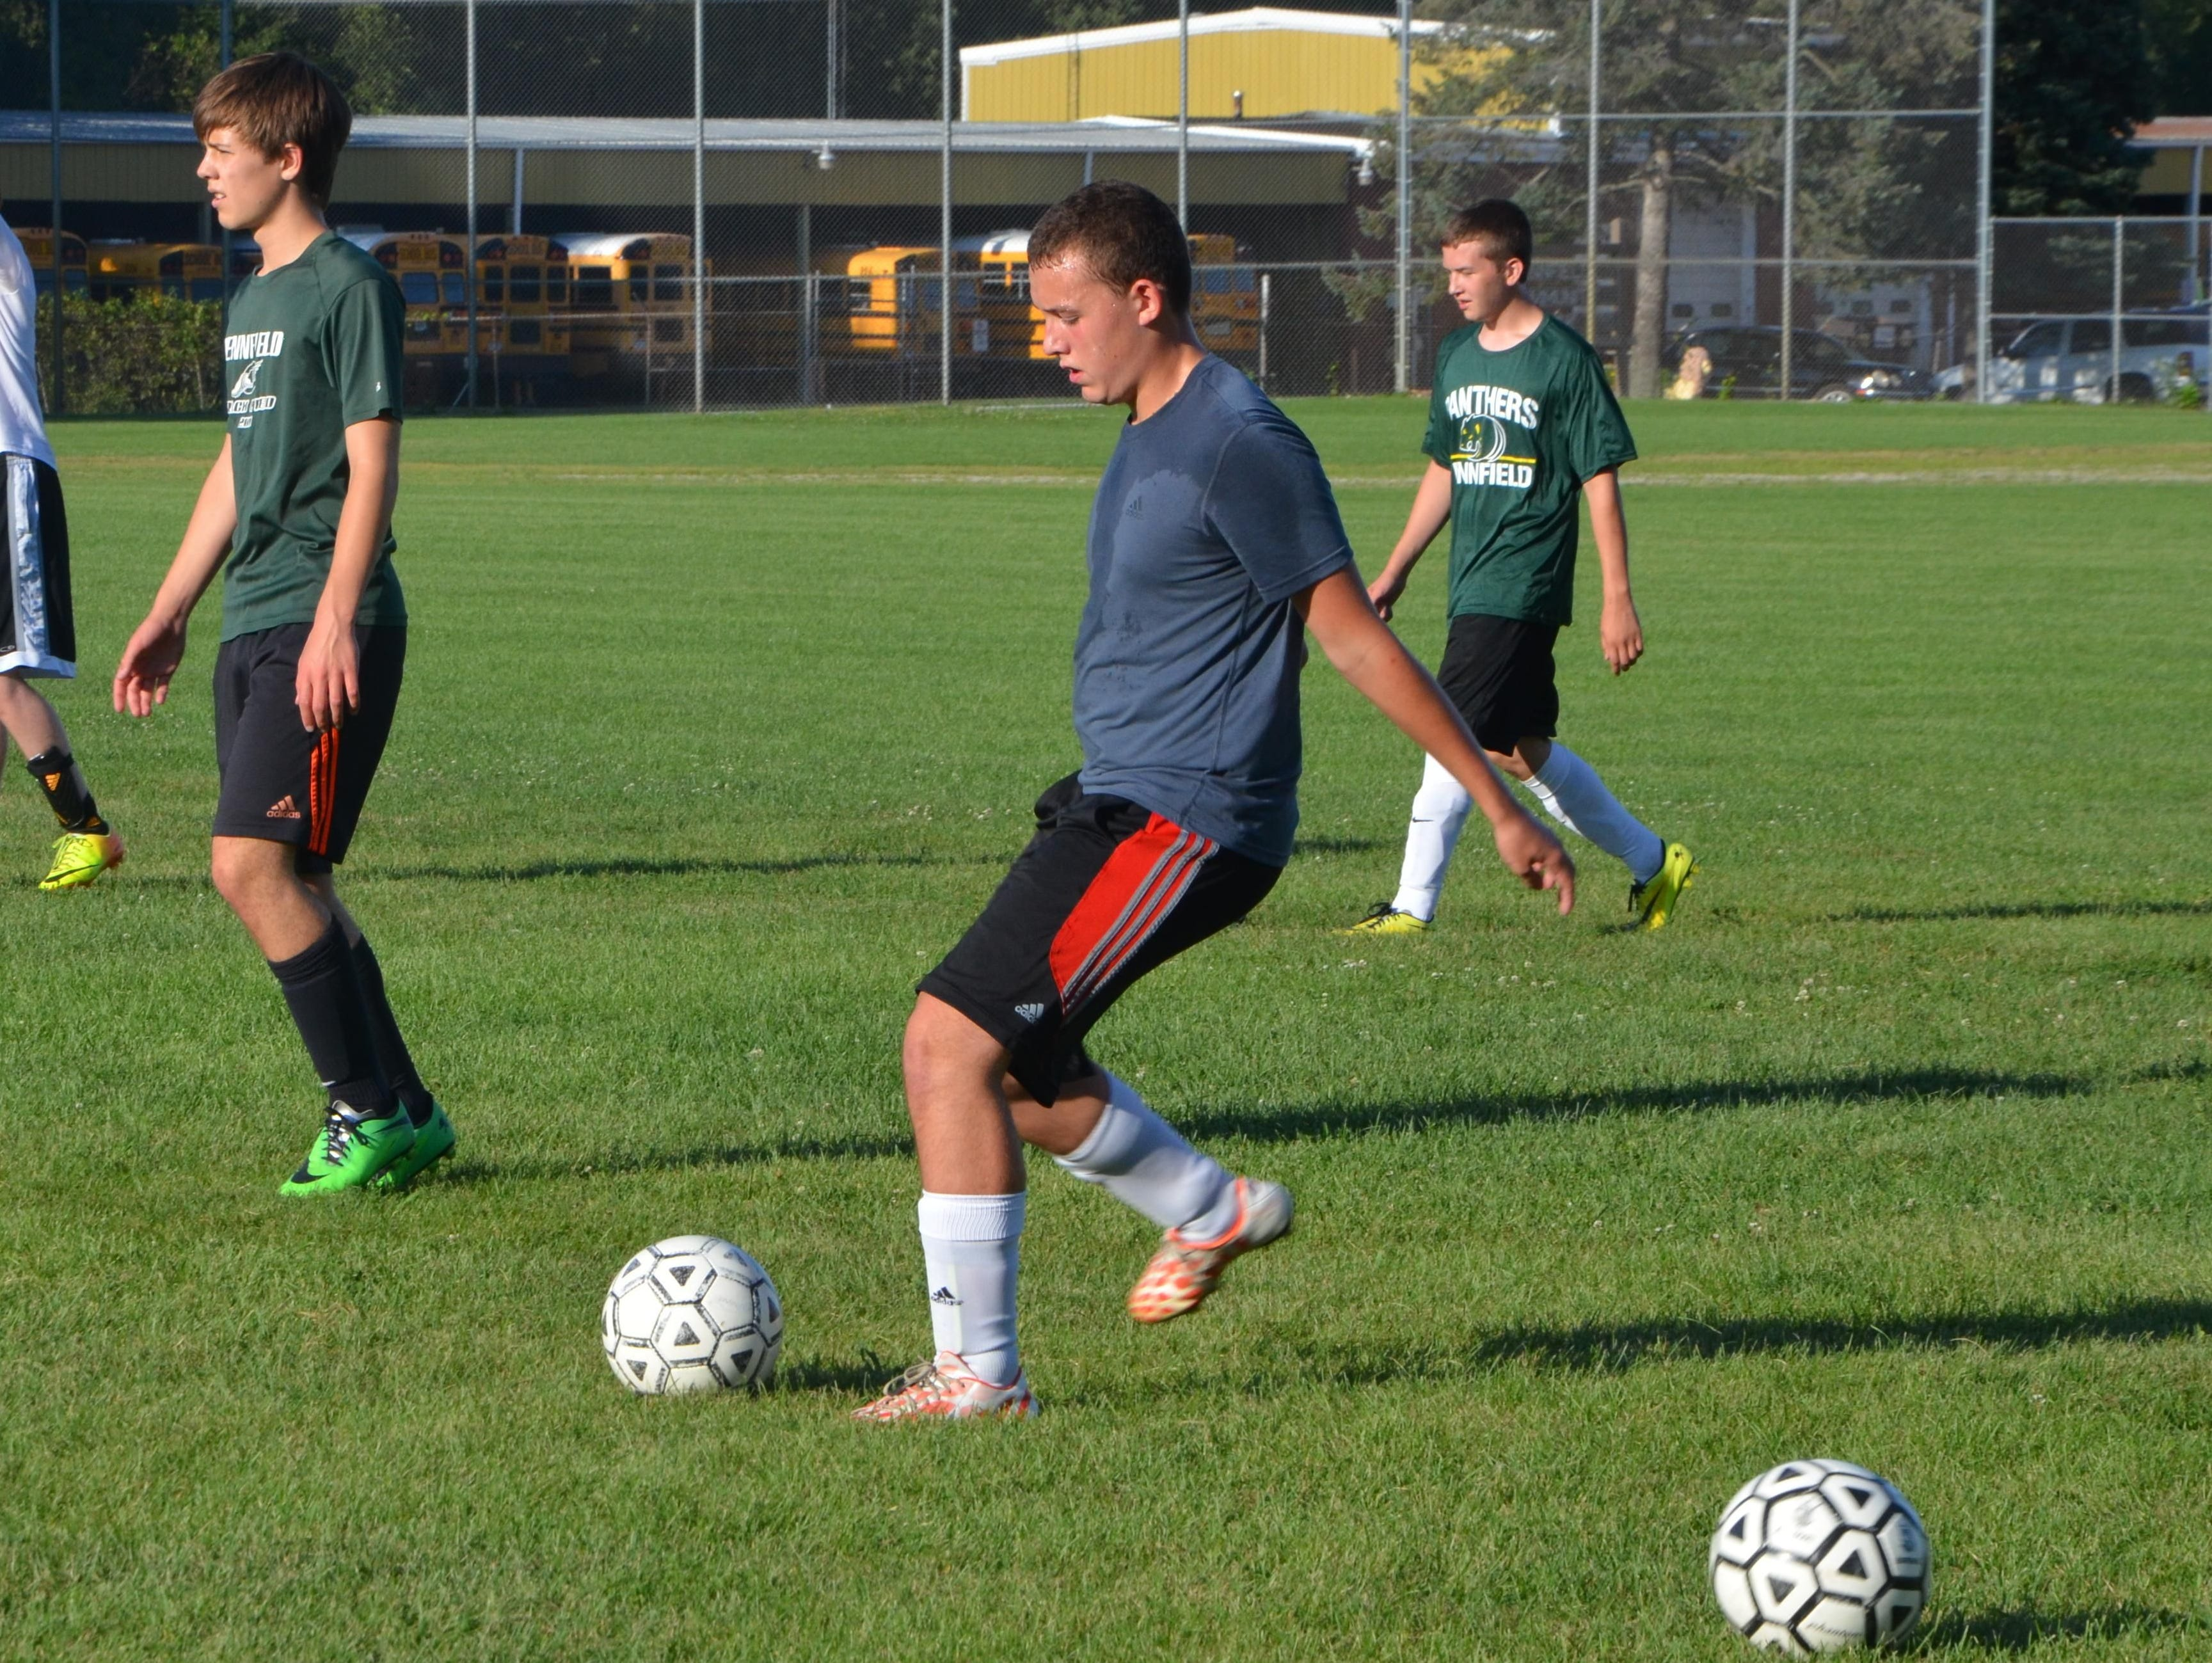 Pennfield's Archie Smith kicks the ball for a drill during the first practice of the season on Wednesday.